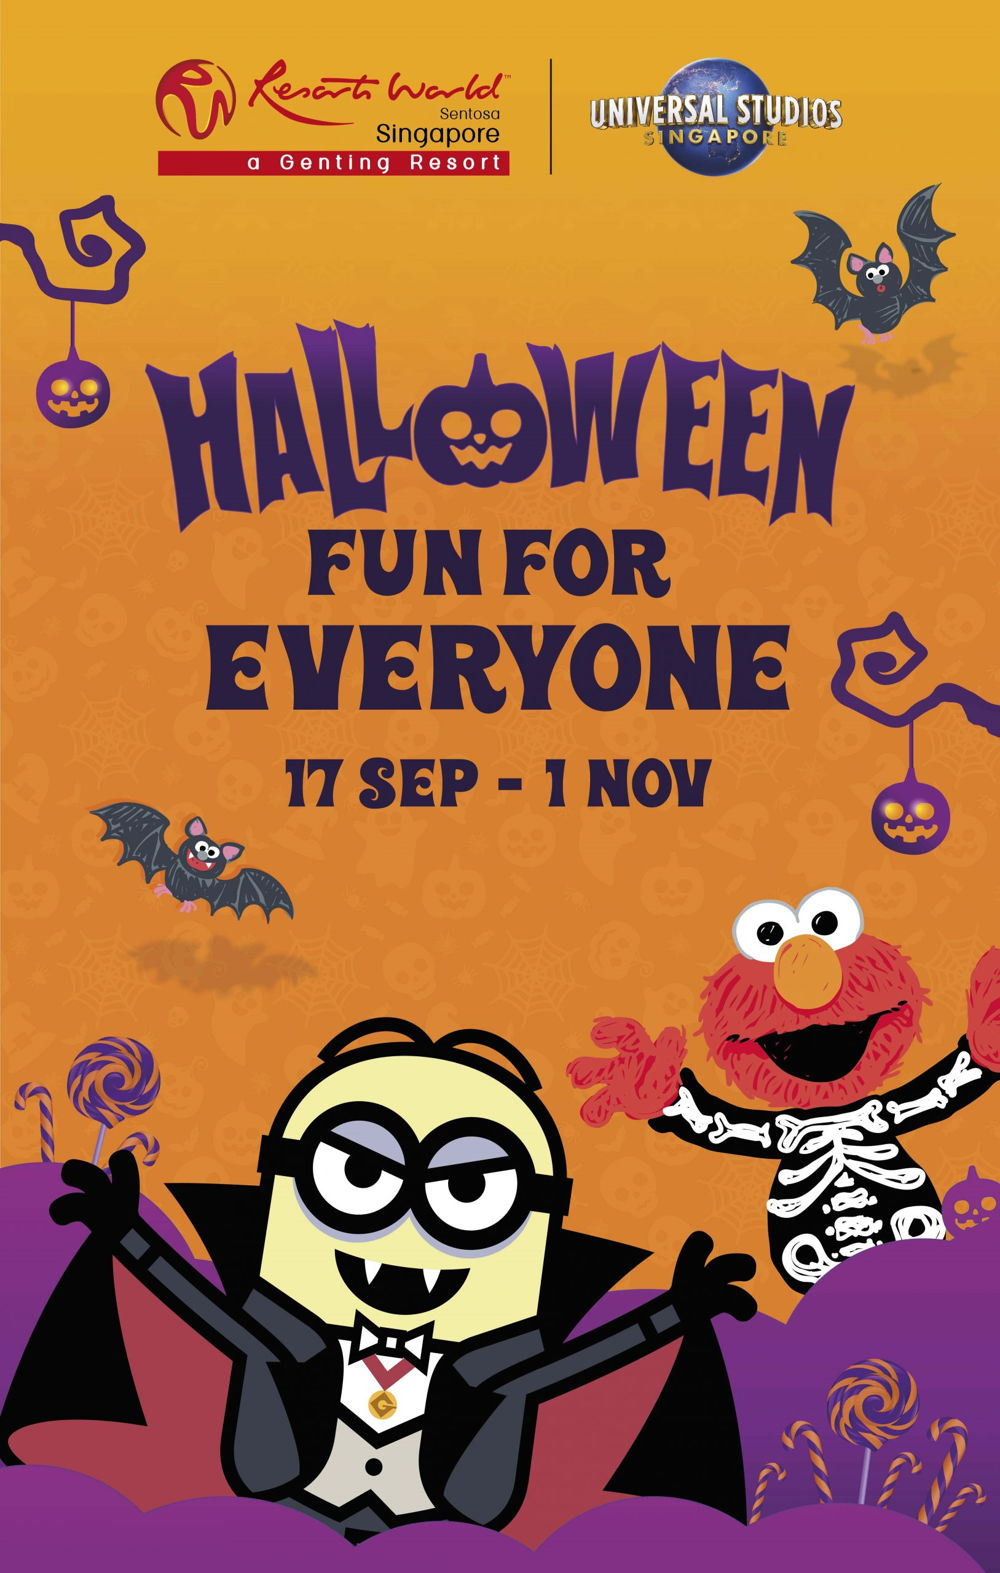 Celebrate Halloween with Spook-tastic Fun at Resorts World Sentosa!